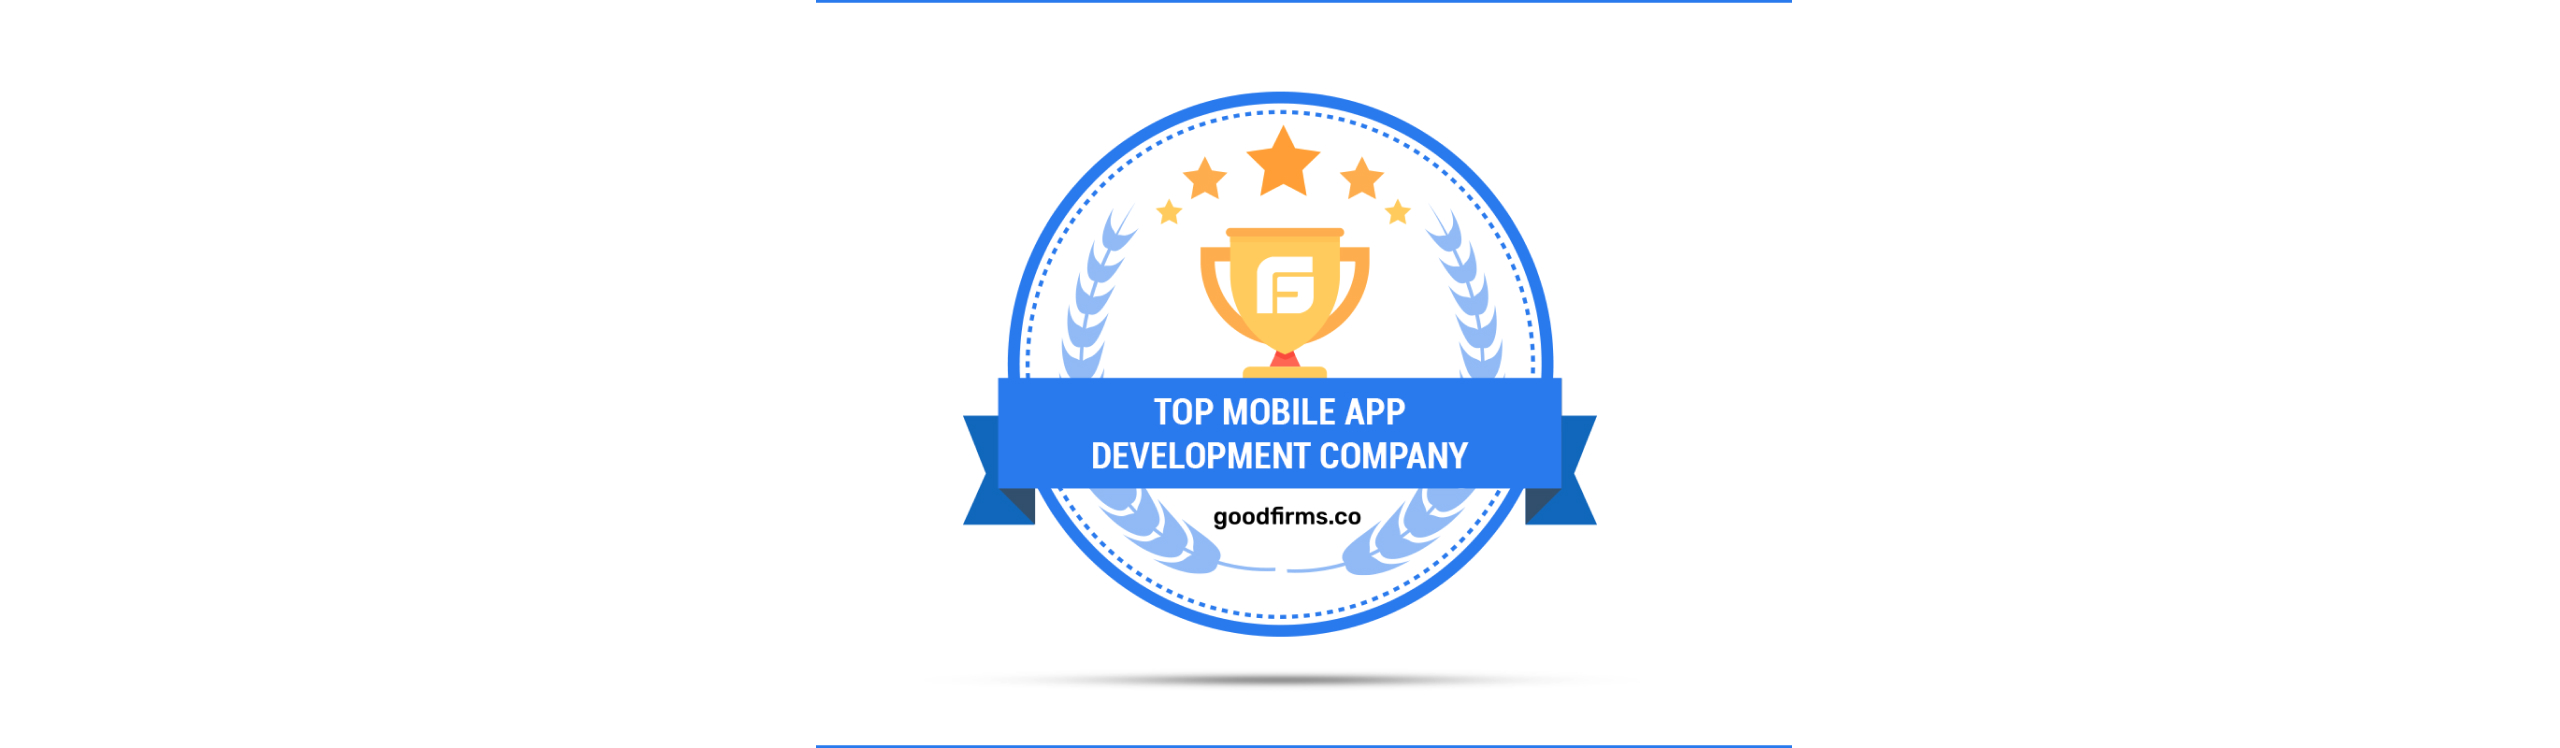 Diffco Ranked Top Mobile App Developer, According to GoodFirms